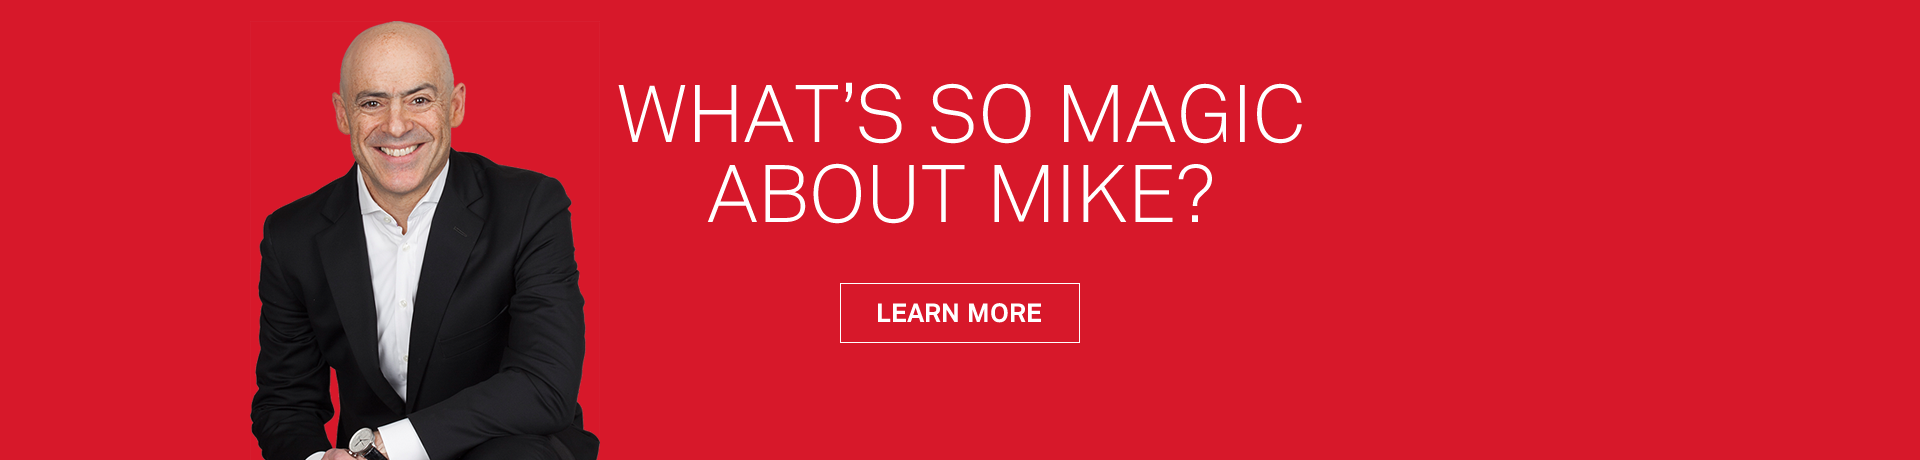 What's so magic about Mike?